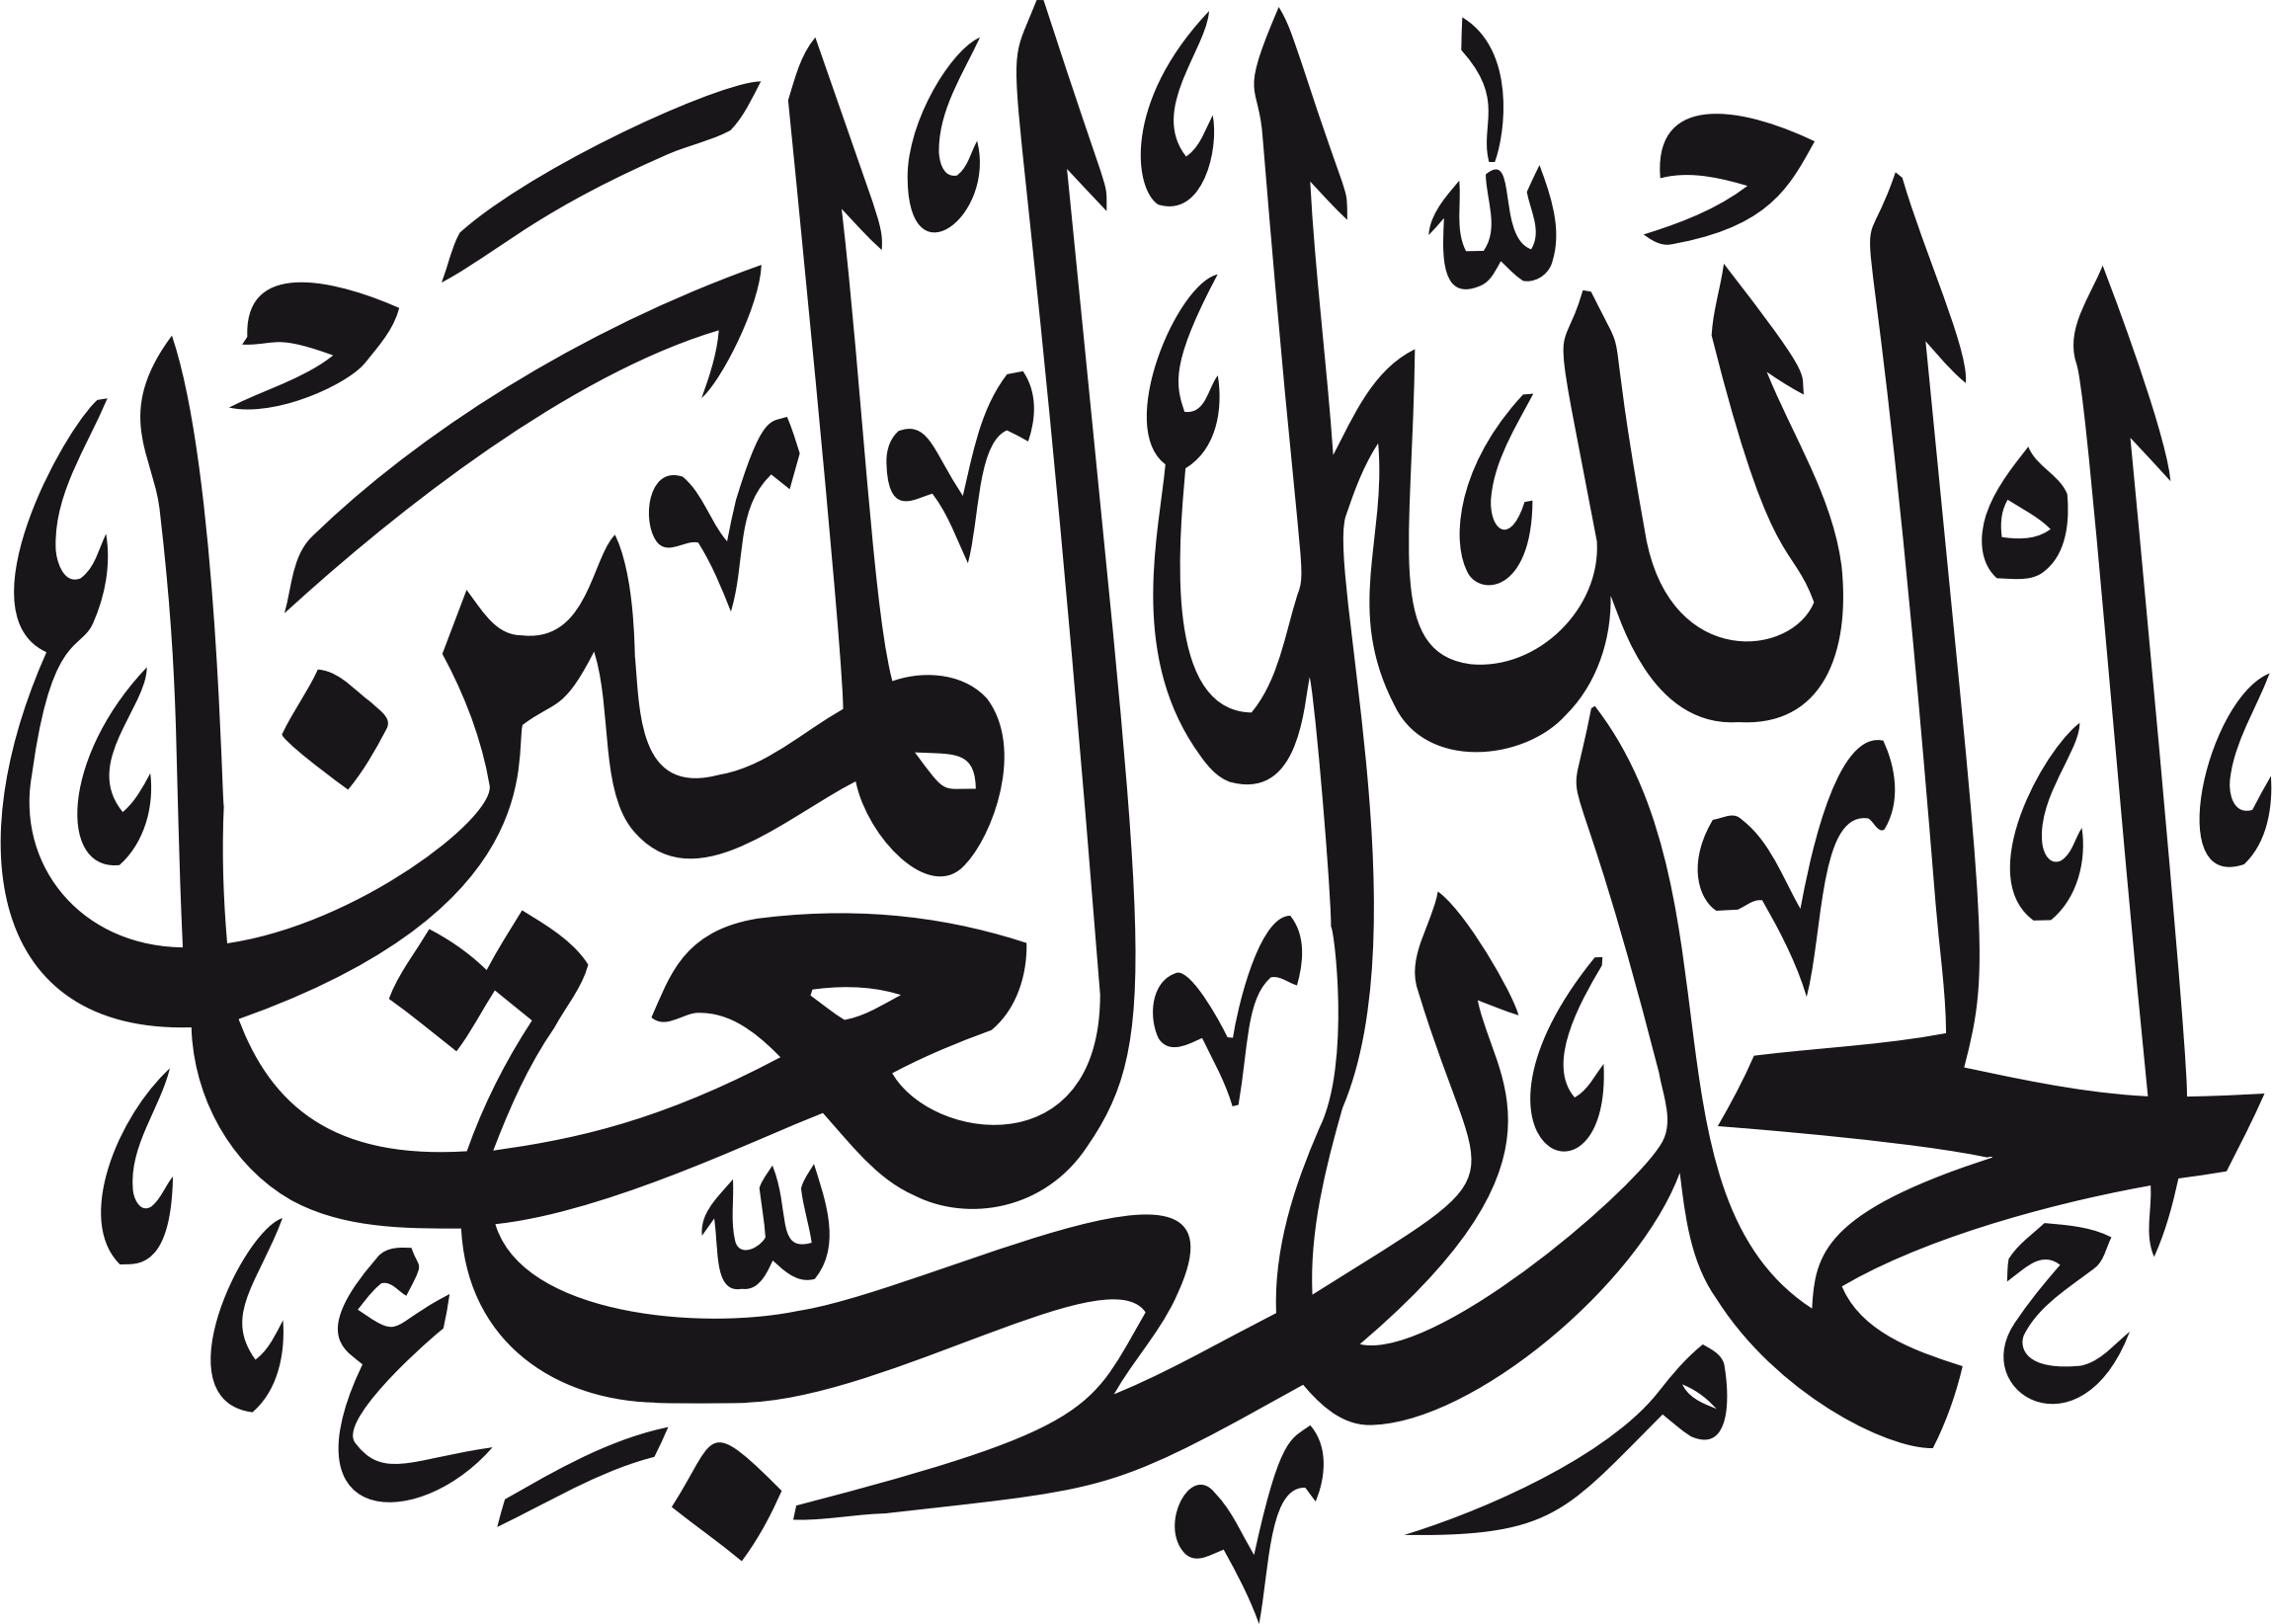 Clipart alhamdulillah big image png thecheapjerseys Images